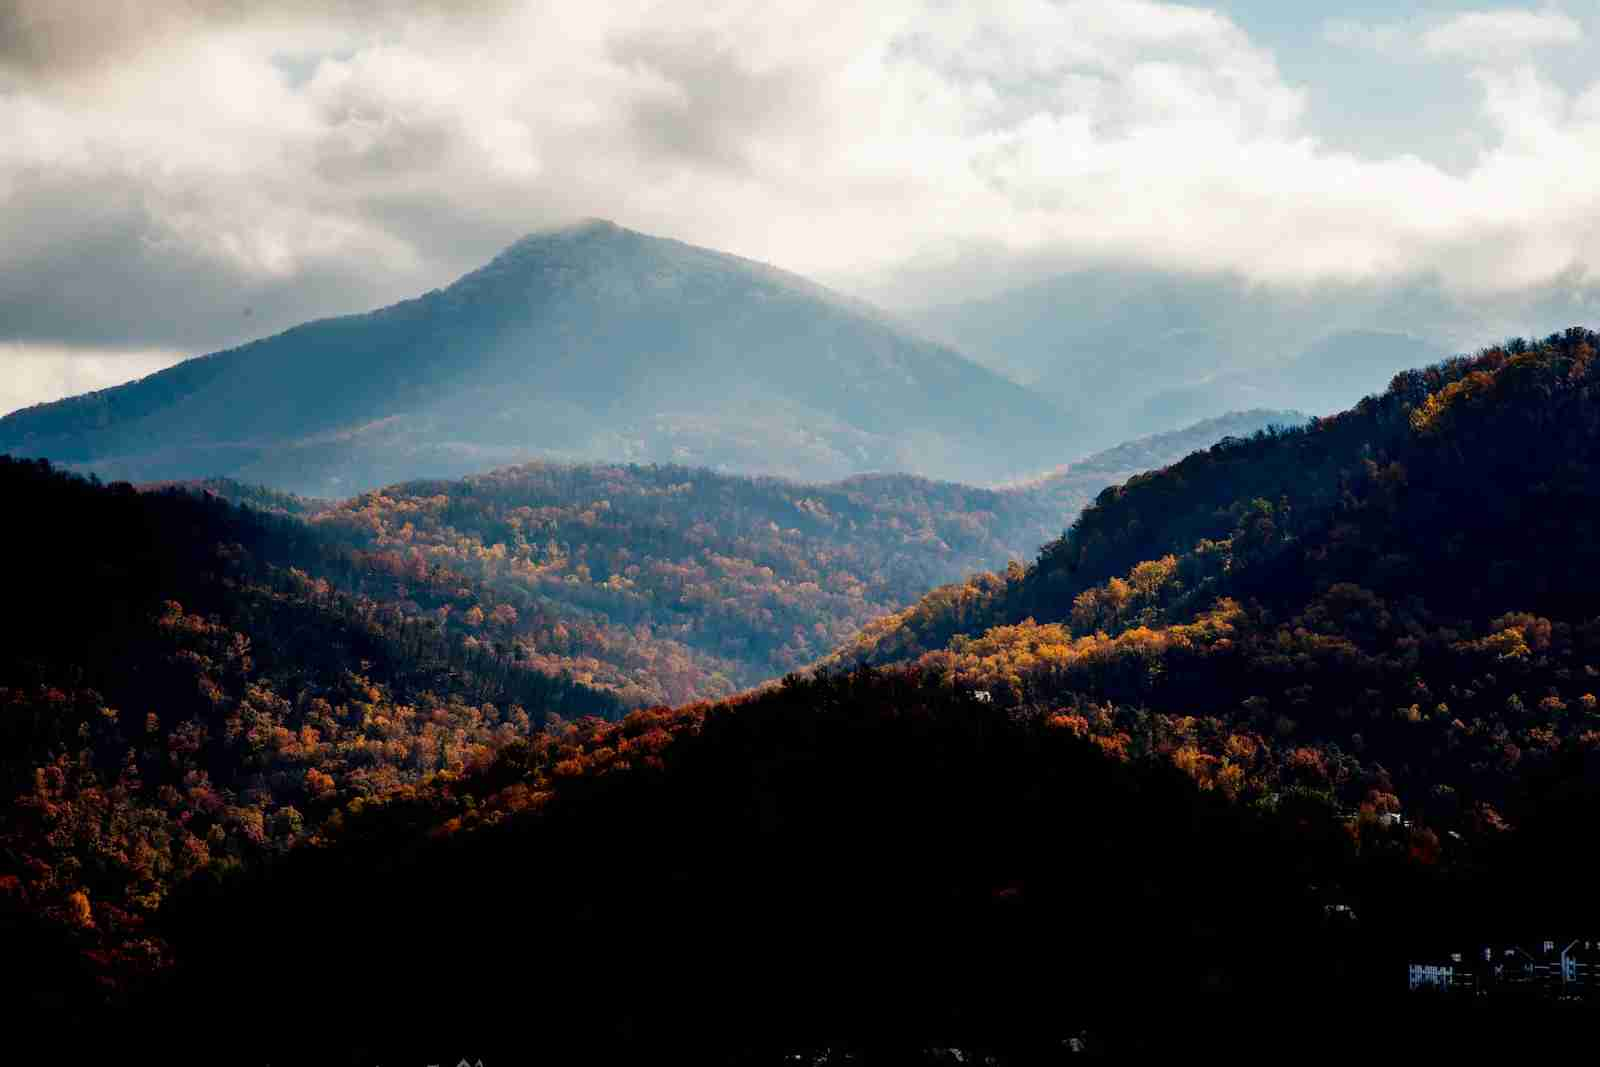 Great Smoky Mountains National Park. (Photo by Patrick Gorski/NurPhoto/Getty Images)